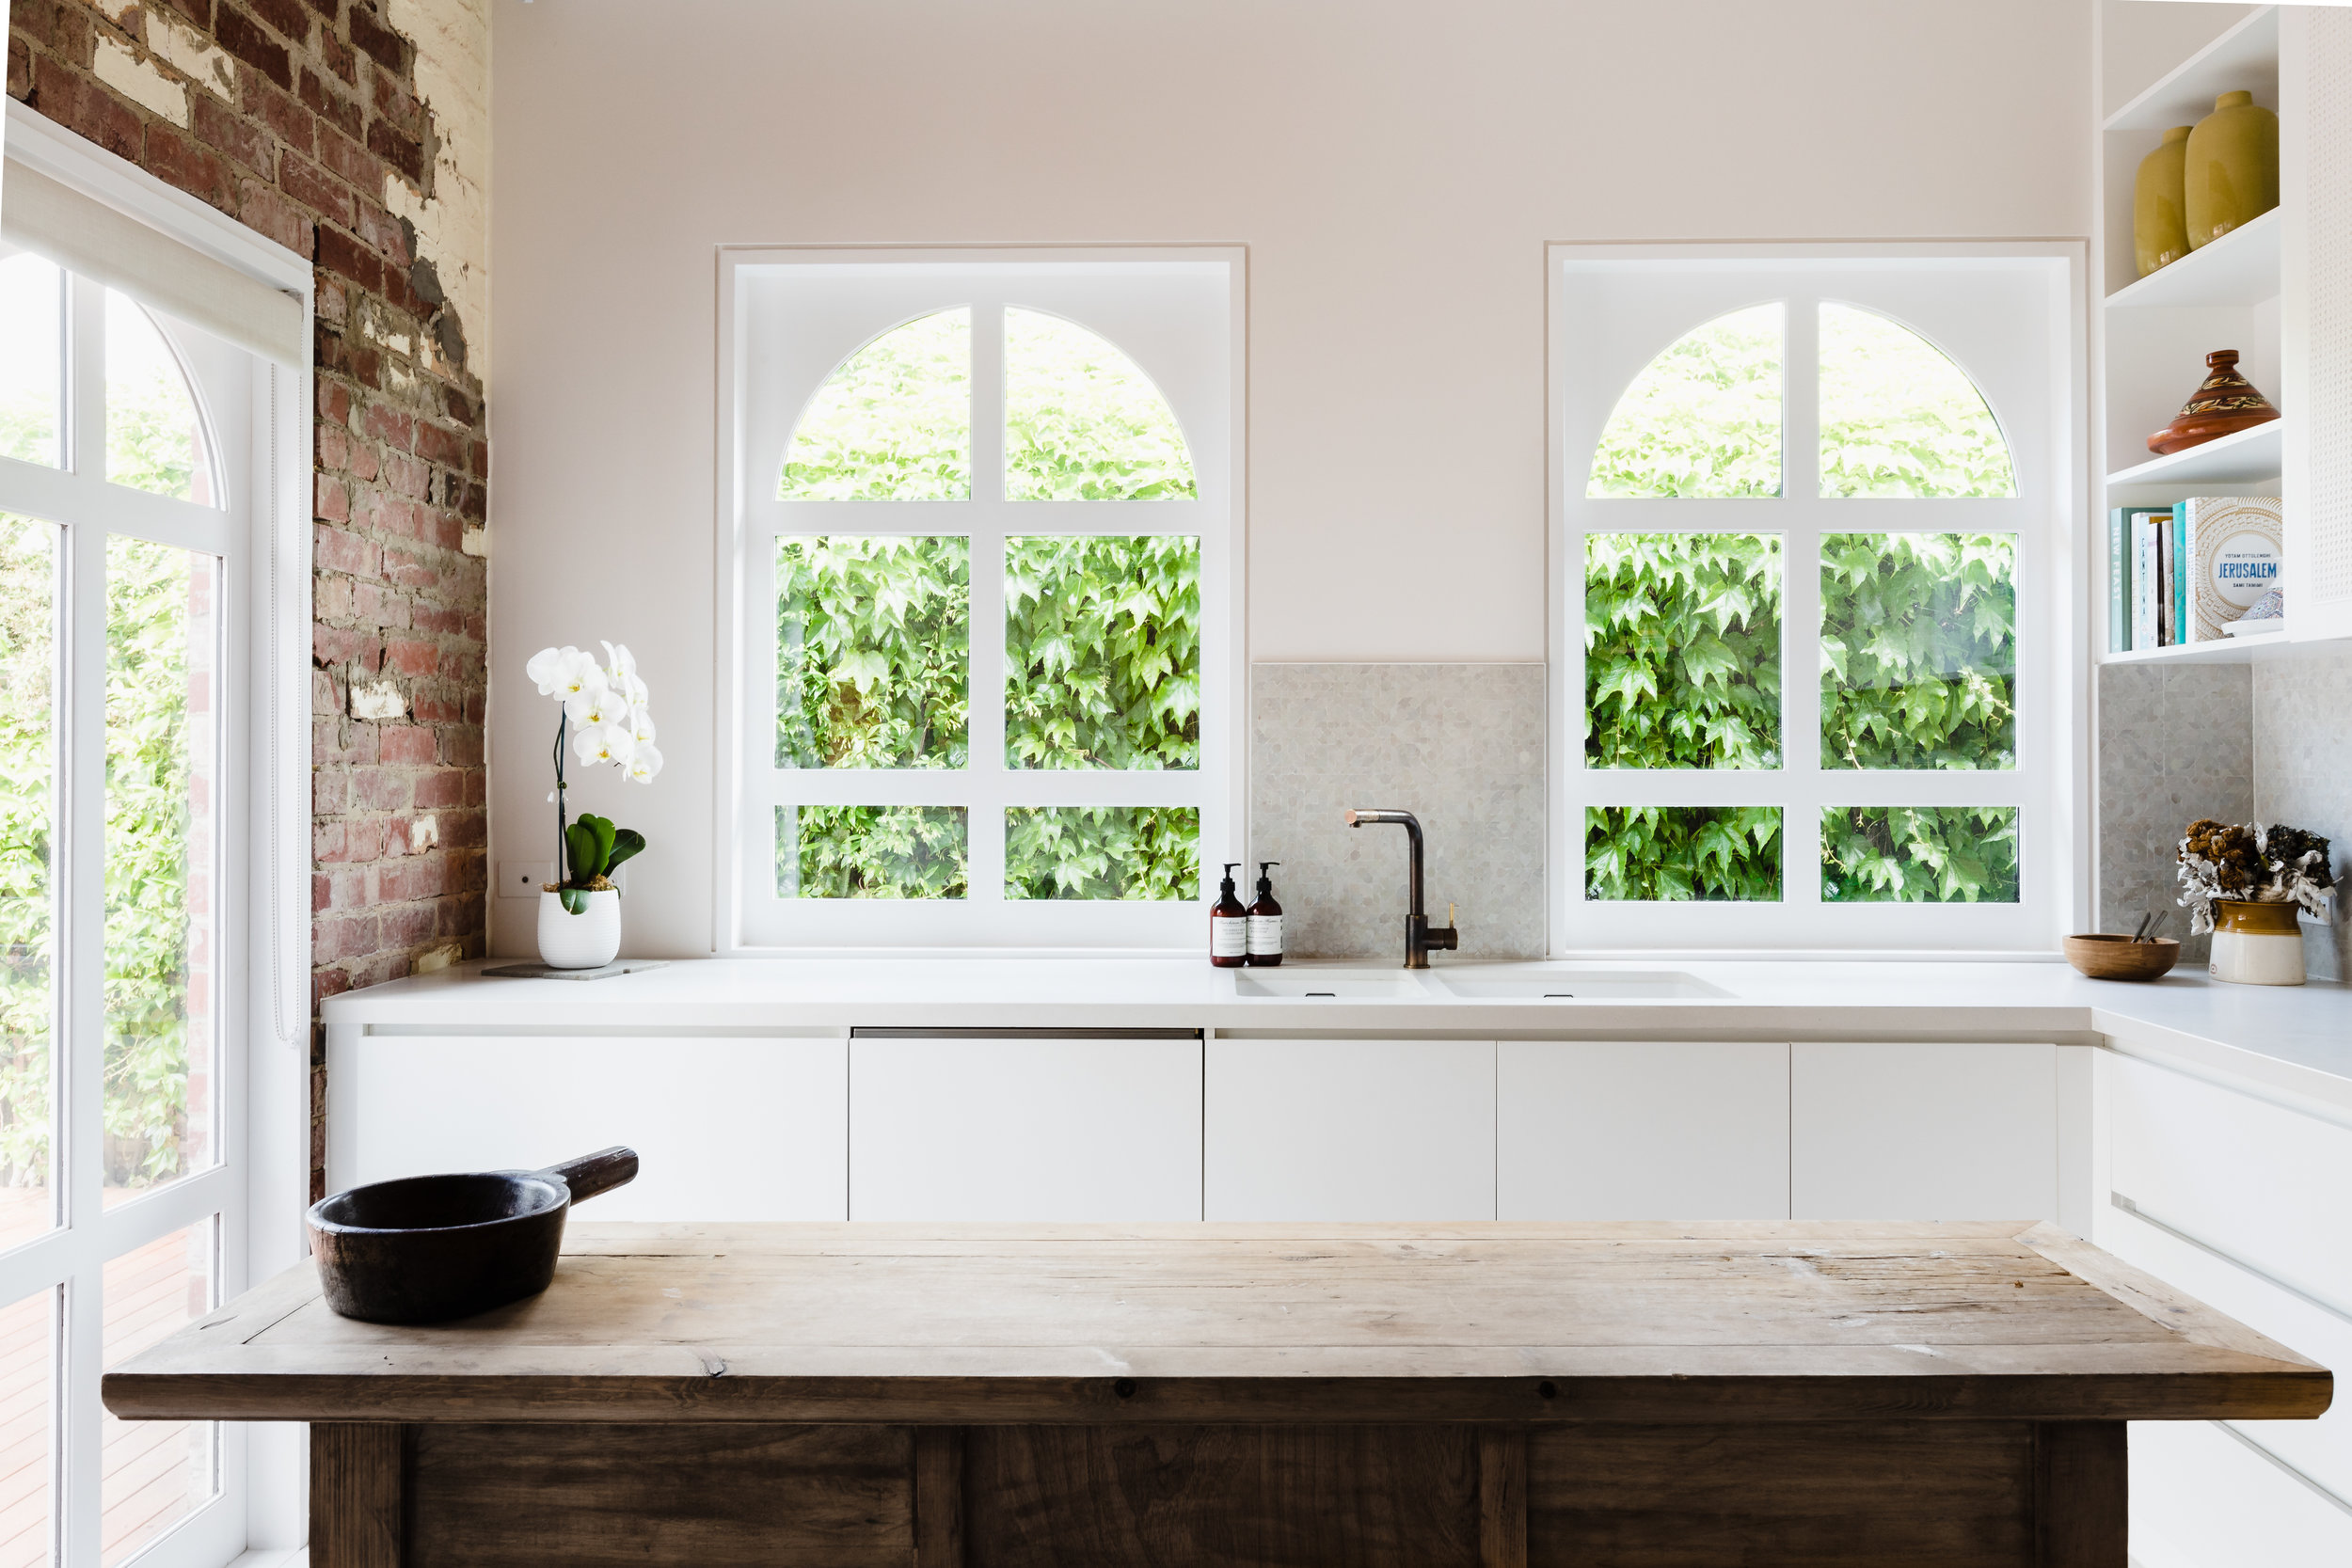 tiles of ezra moroccan tile kitchen splashback.jpg